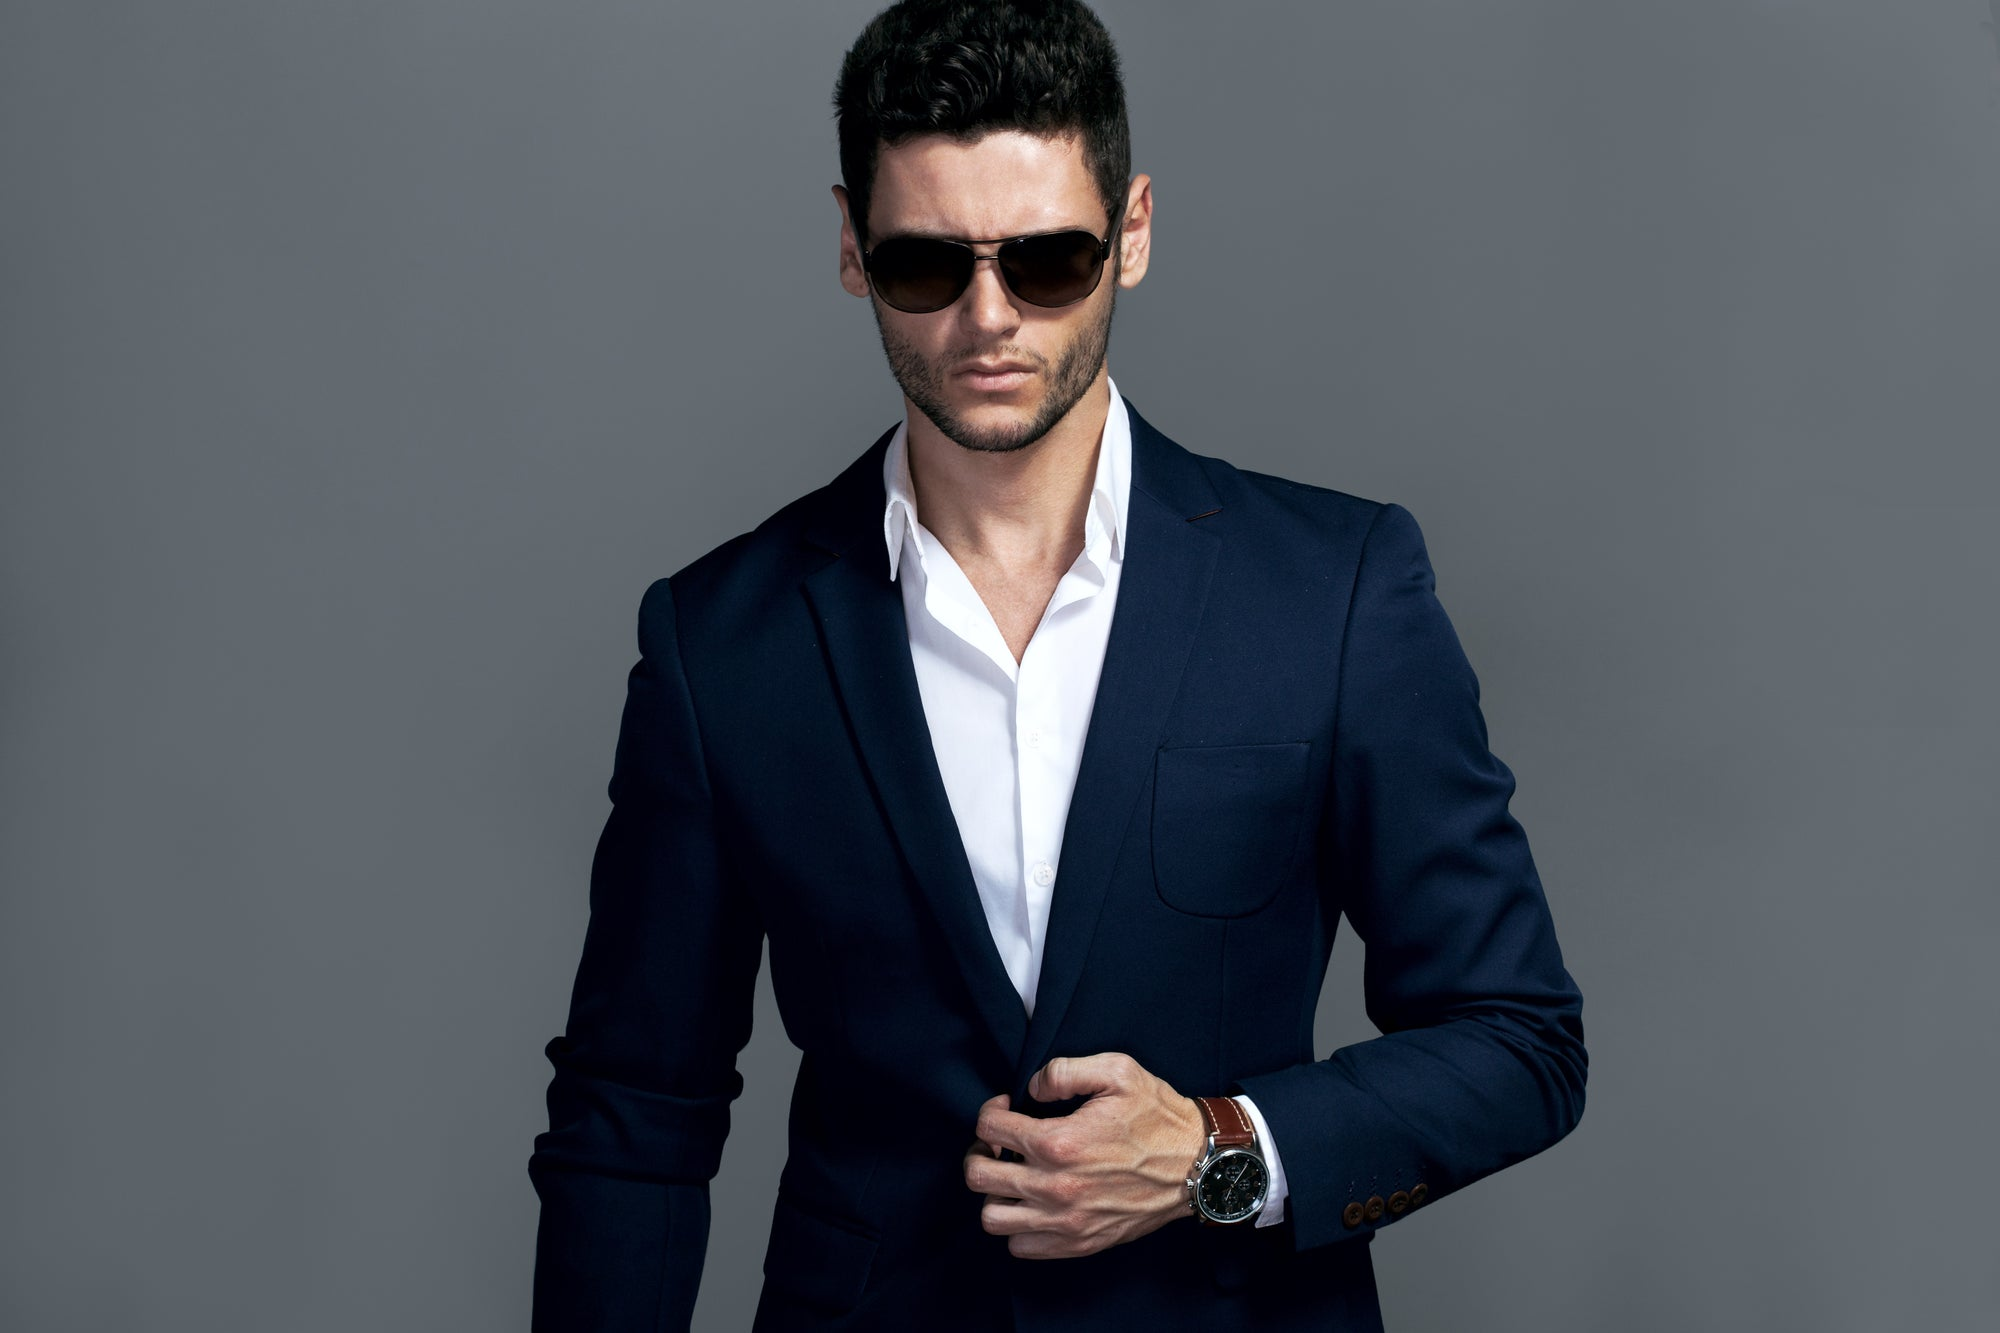 men's top luxury brand sunglasses